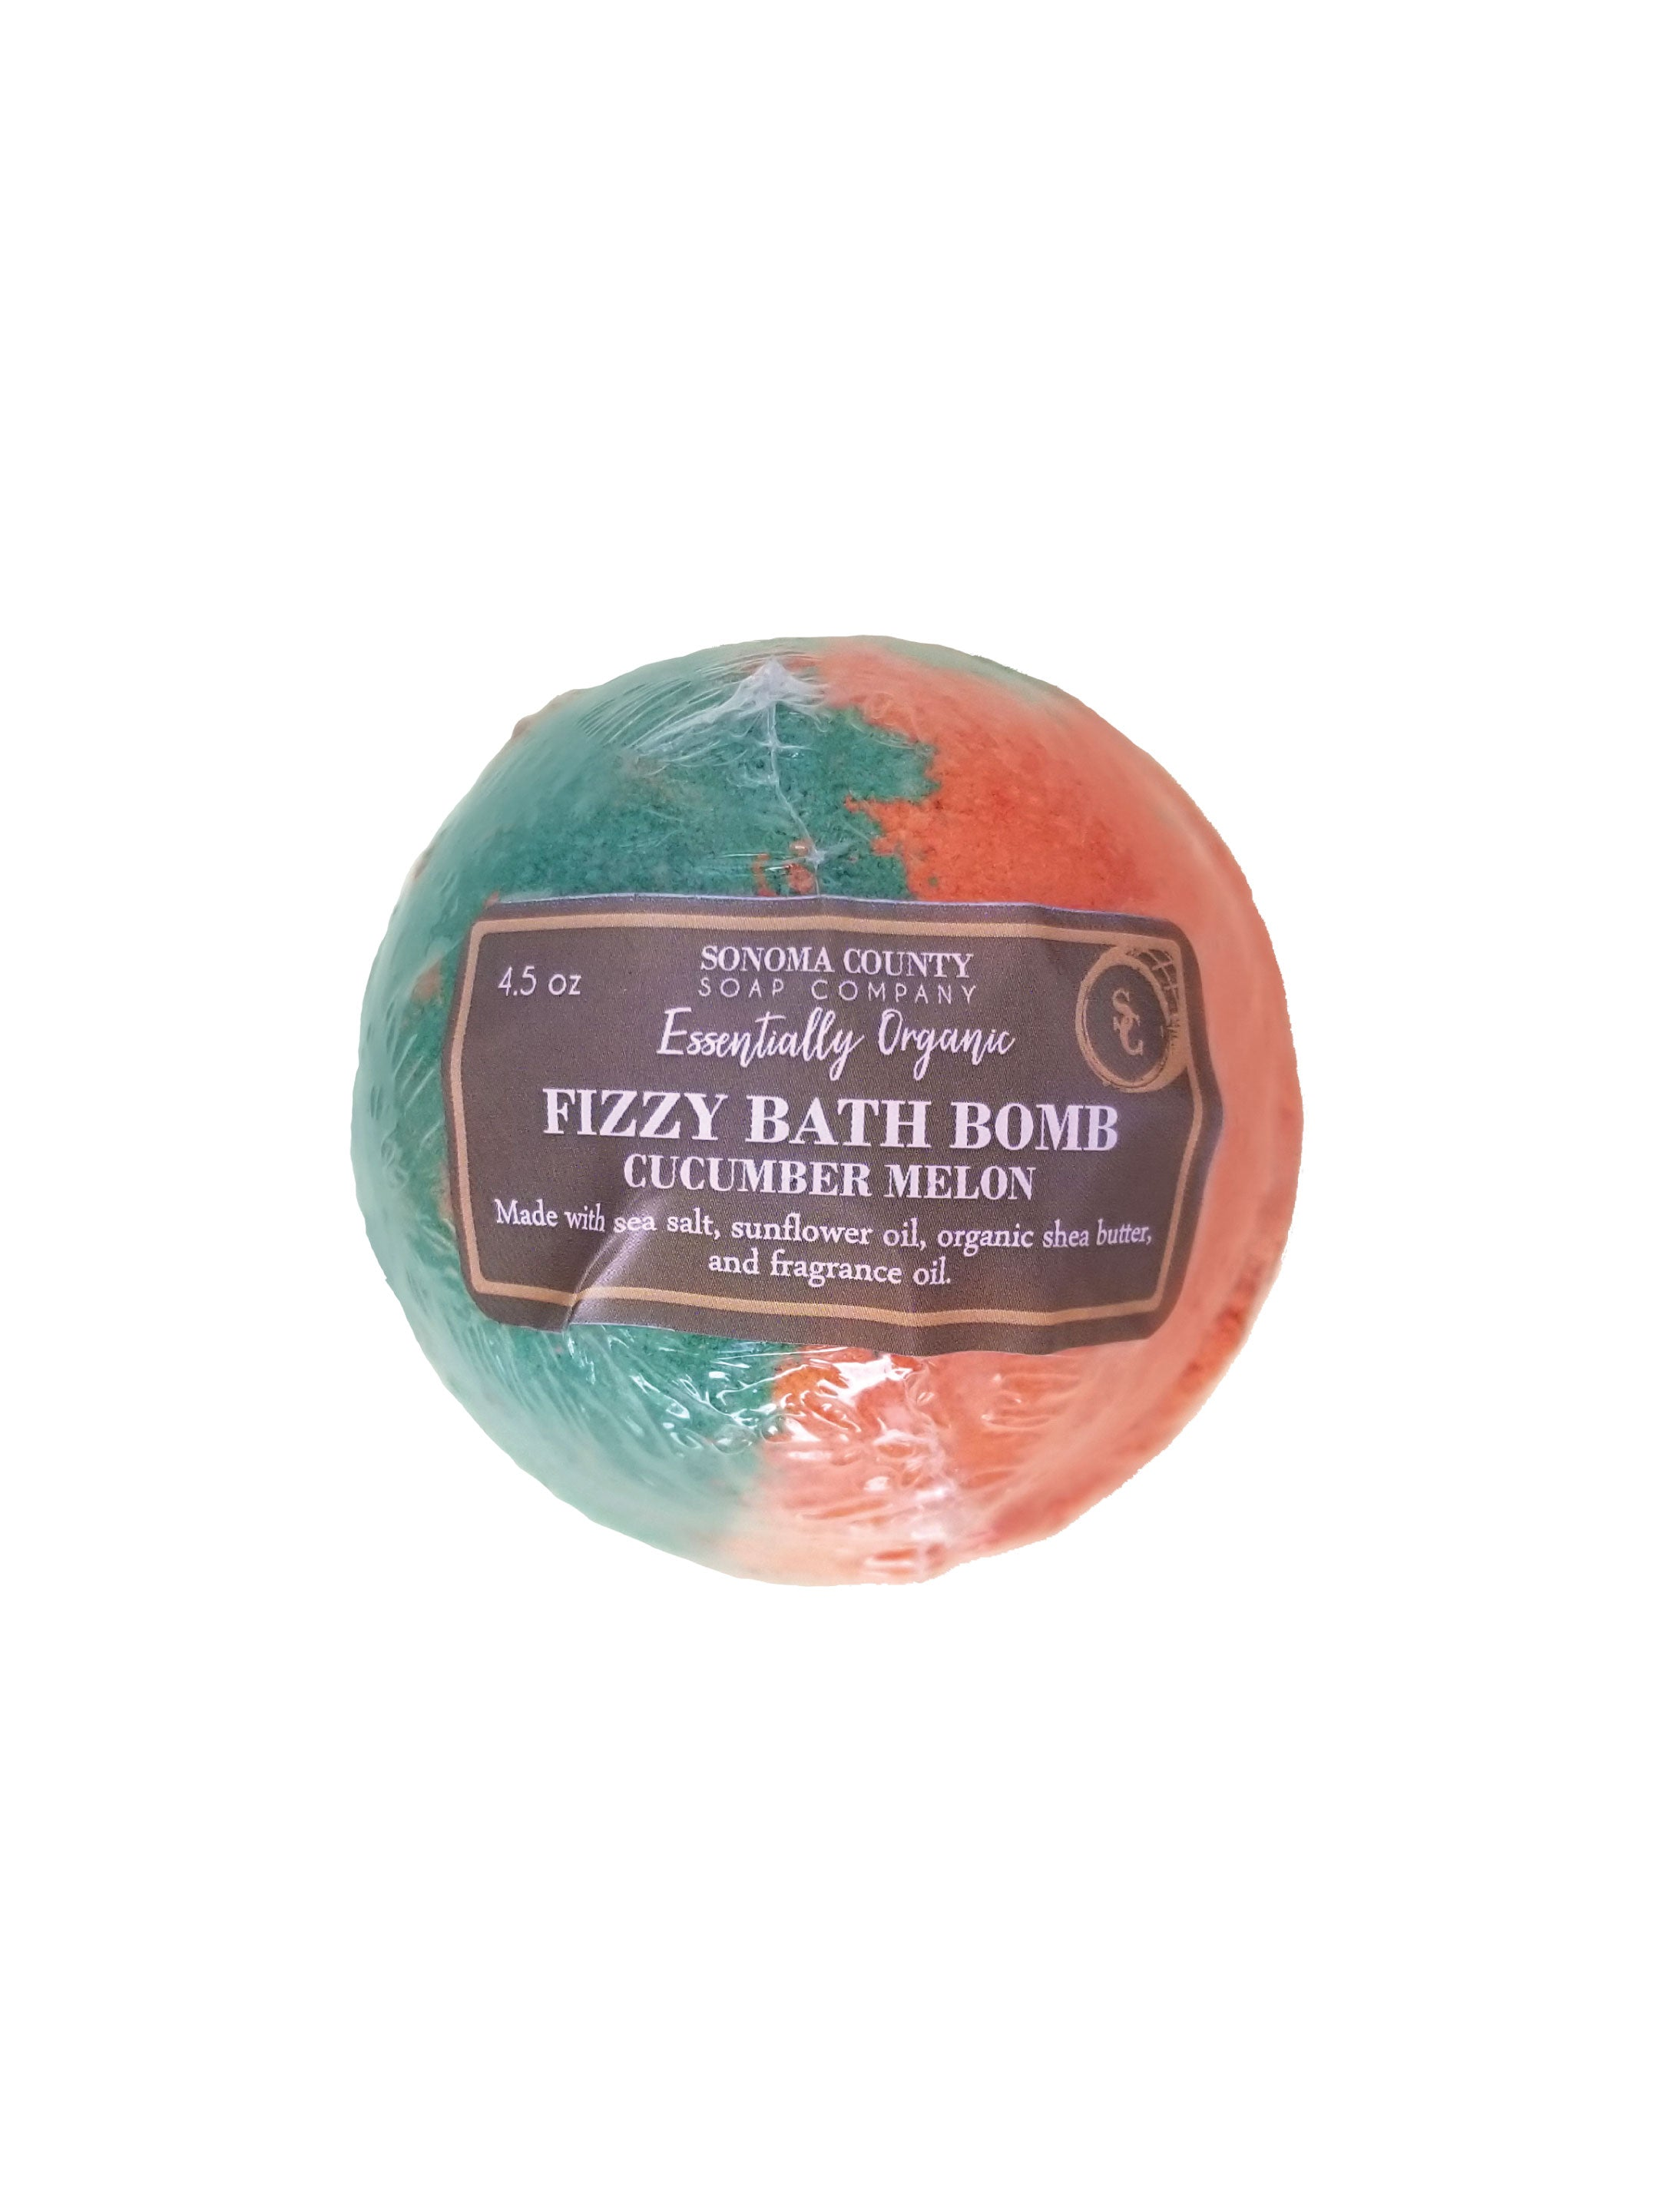 Essentially Organics Fizzy Bath Bomb